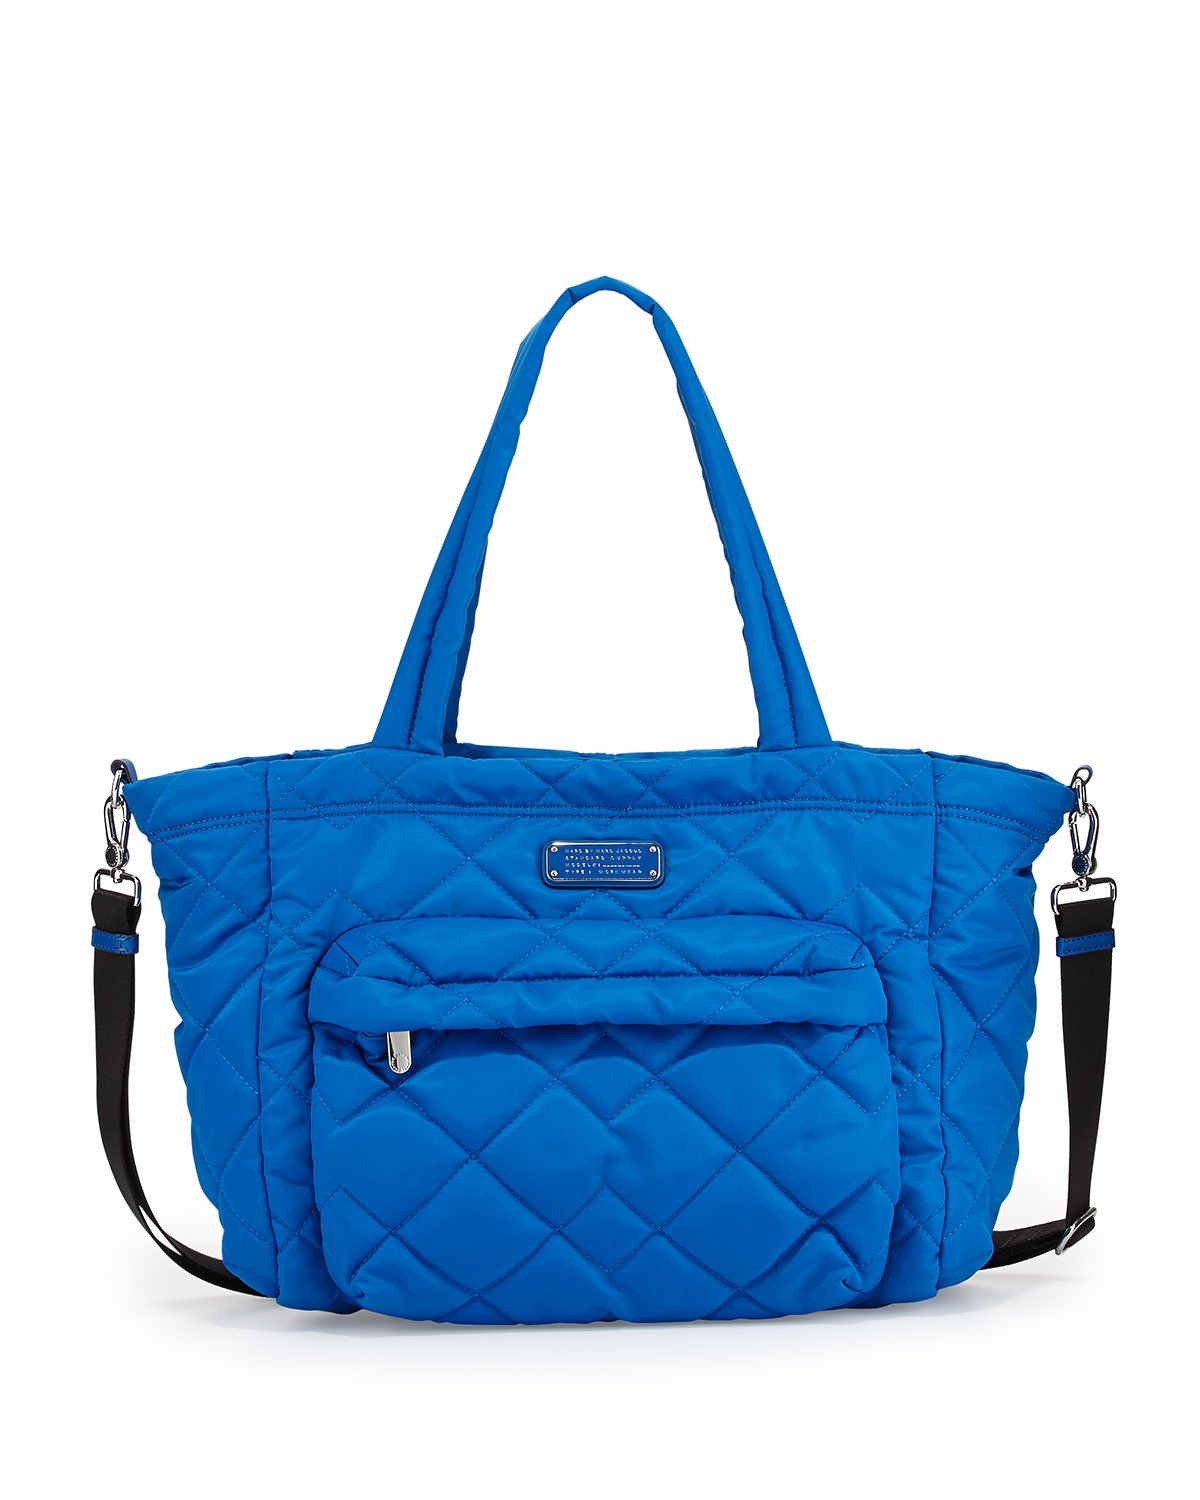 marc by marc jacobs crosby quilt nylon diaper bag in blue lyst. Black Bedroom Furniture Sets. Home Design Ideas